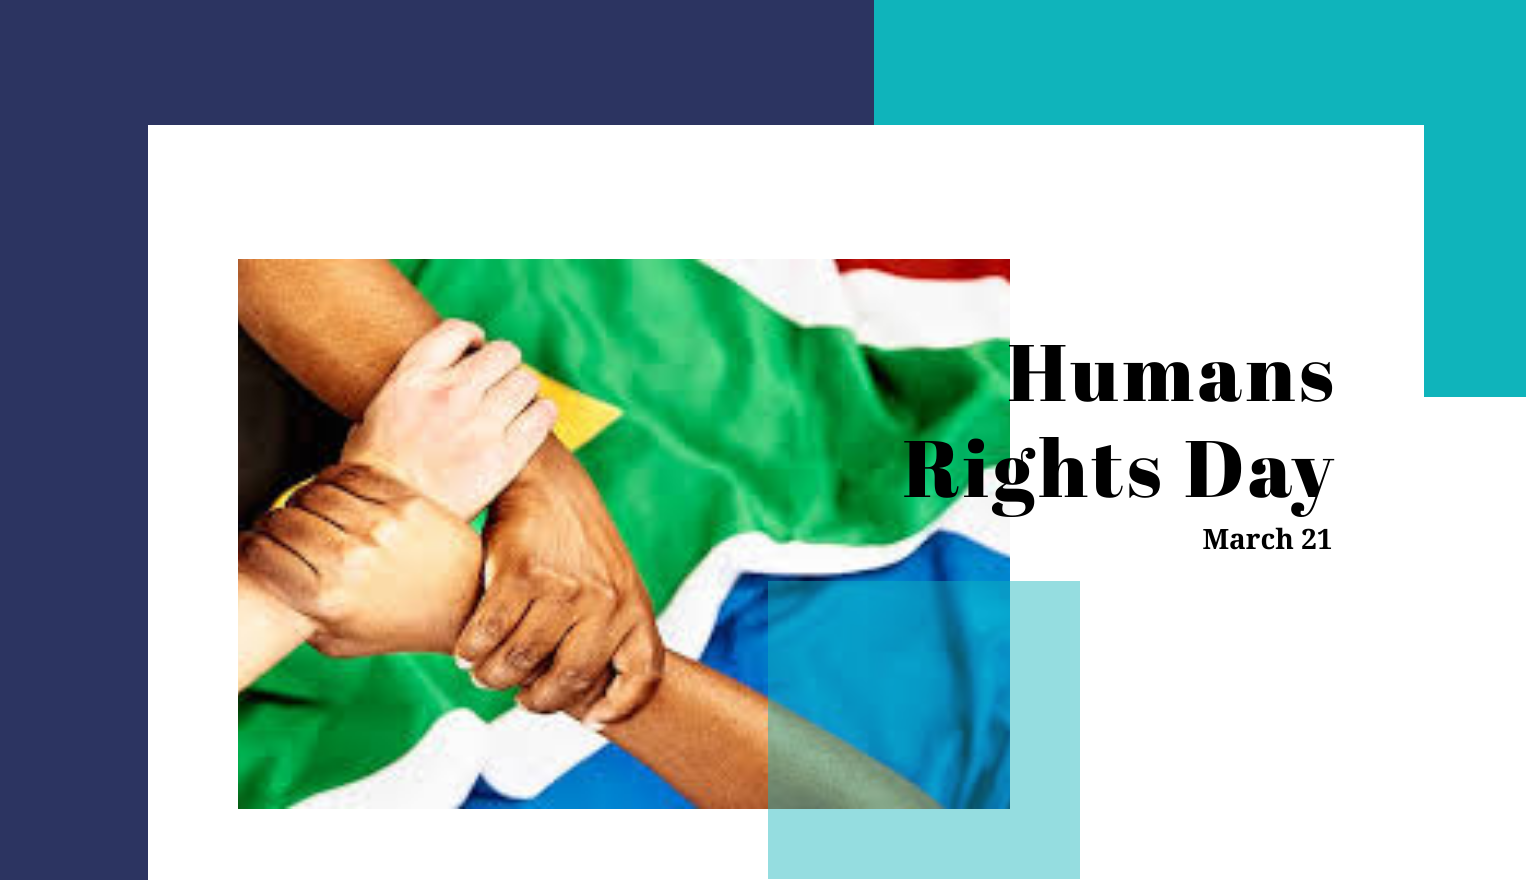 https://sihma.org.za/photos/shares/Human Rights Day Infographic.png